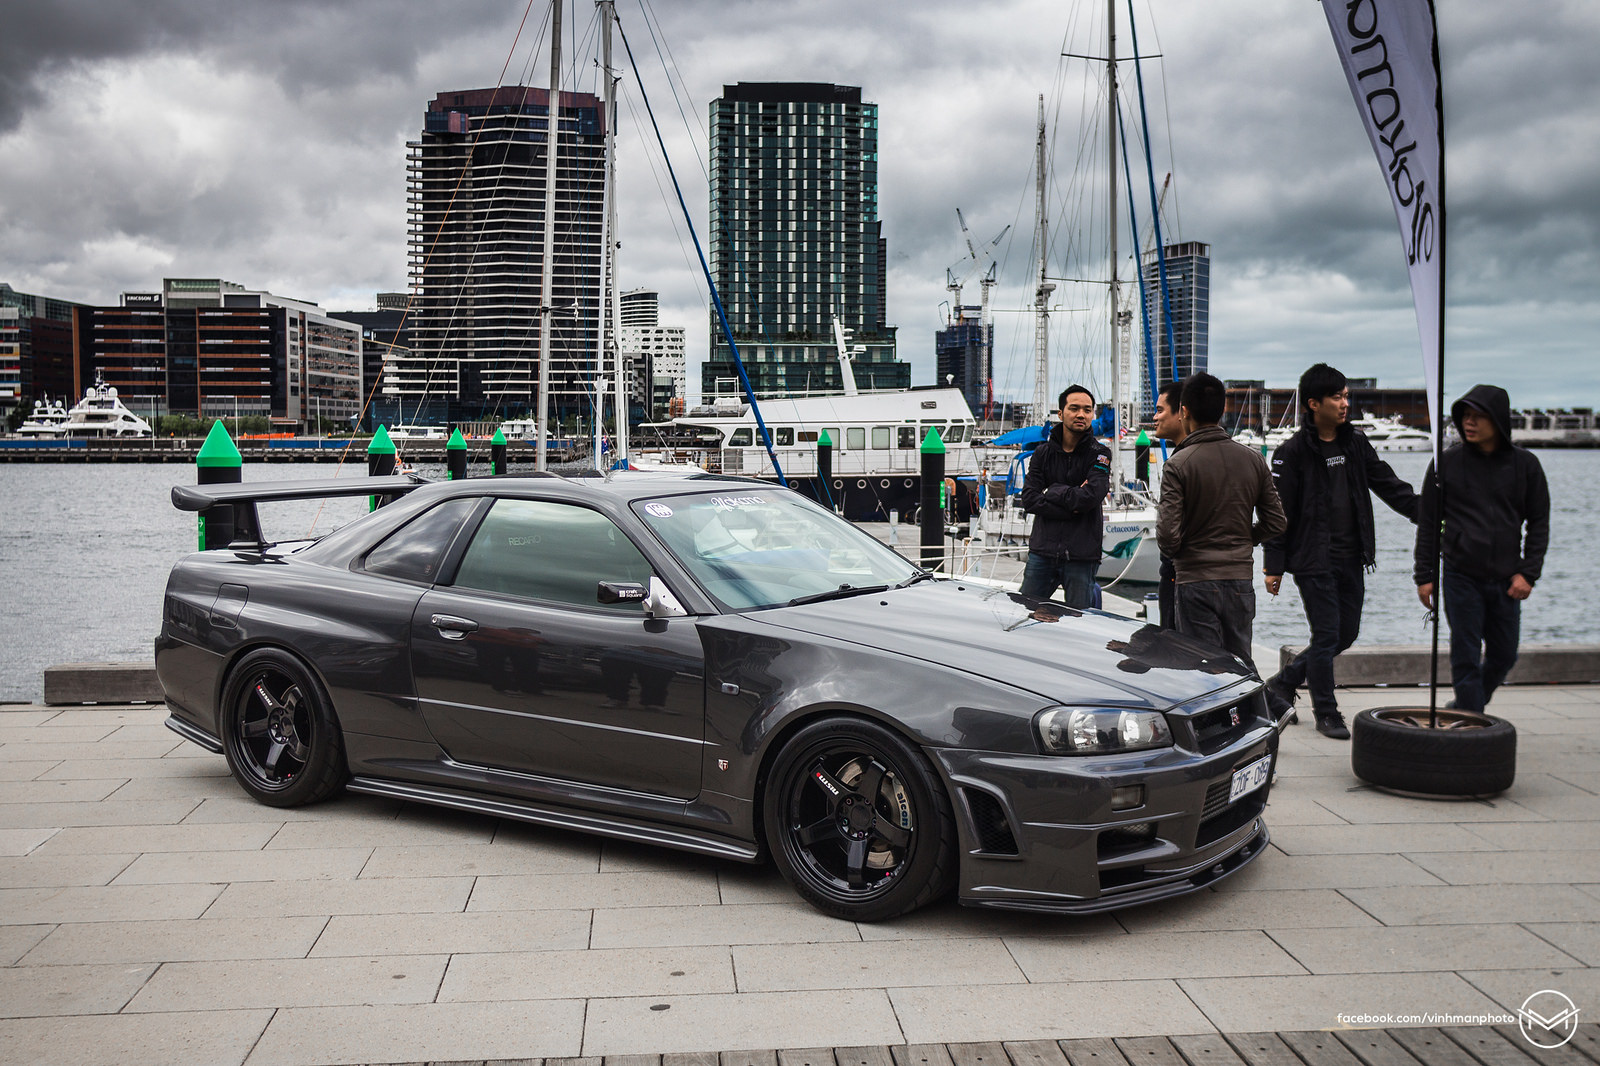 modified nissan skyline r34 6 tuning. Black Bedroom Furniture Sets. Home Design Ideas